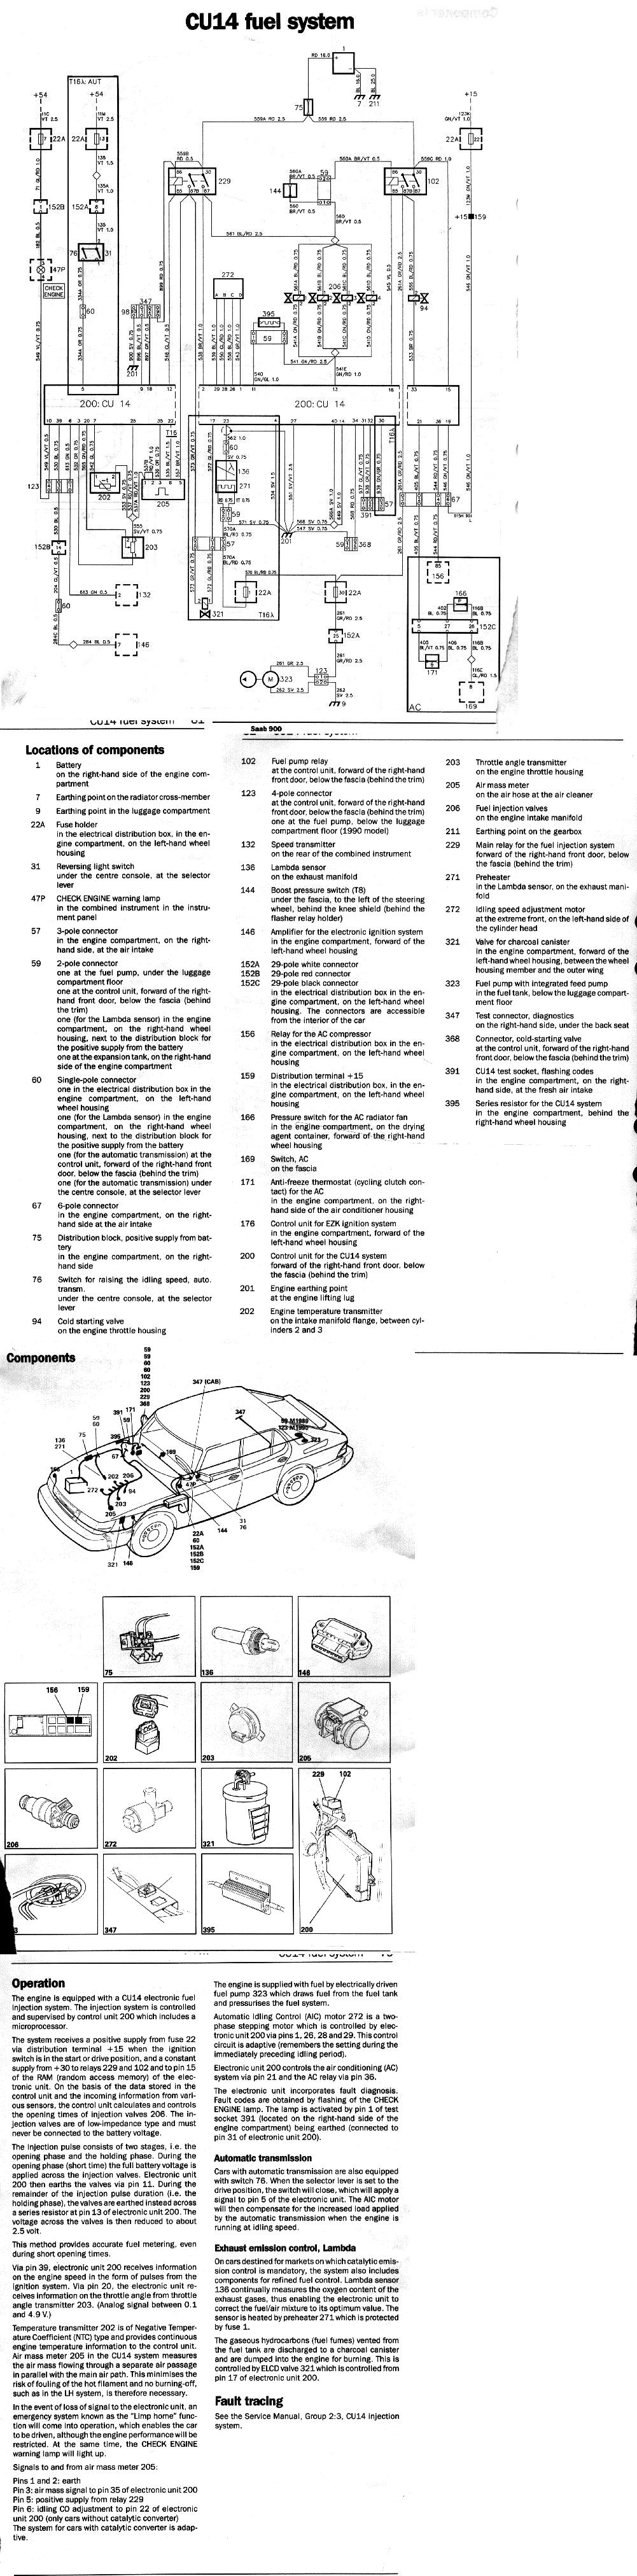 110 Wiring Diagram For Lights Colorized Separated Baja